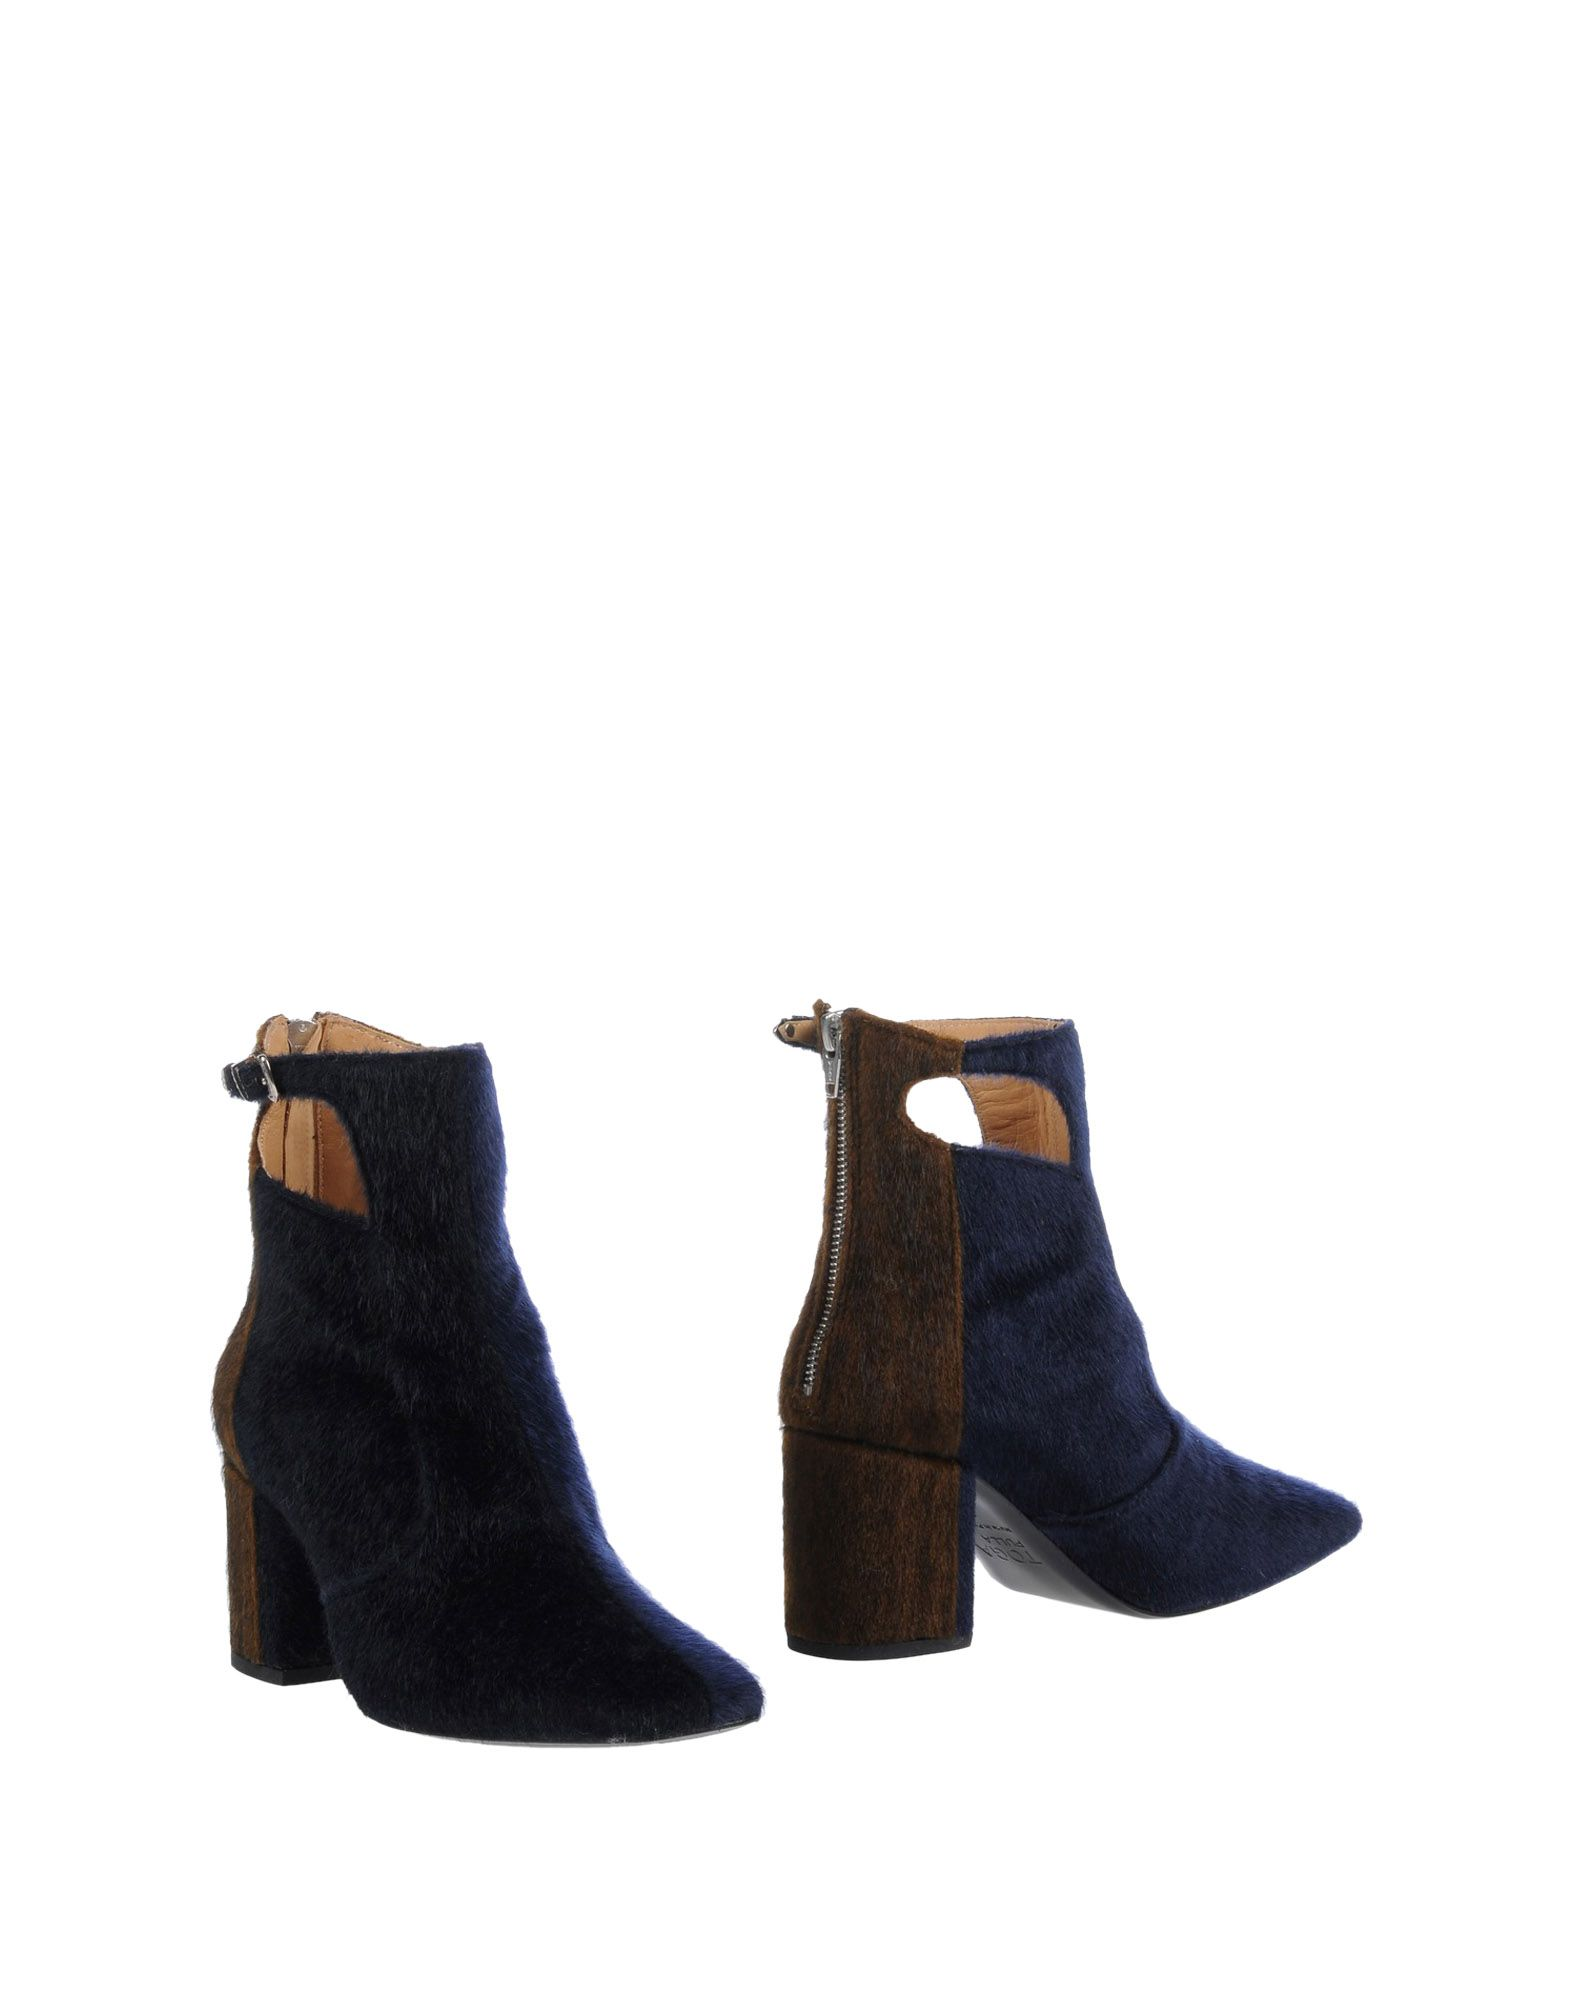 Toga Pulla Ankle Boot - Women Toga Pulla Ankle United Boots online on  United Ankle Kingdom - 11452583FF 31930f